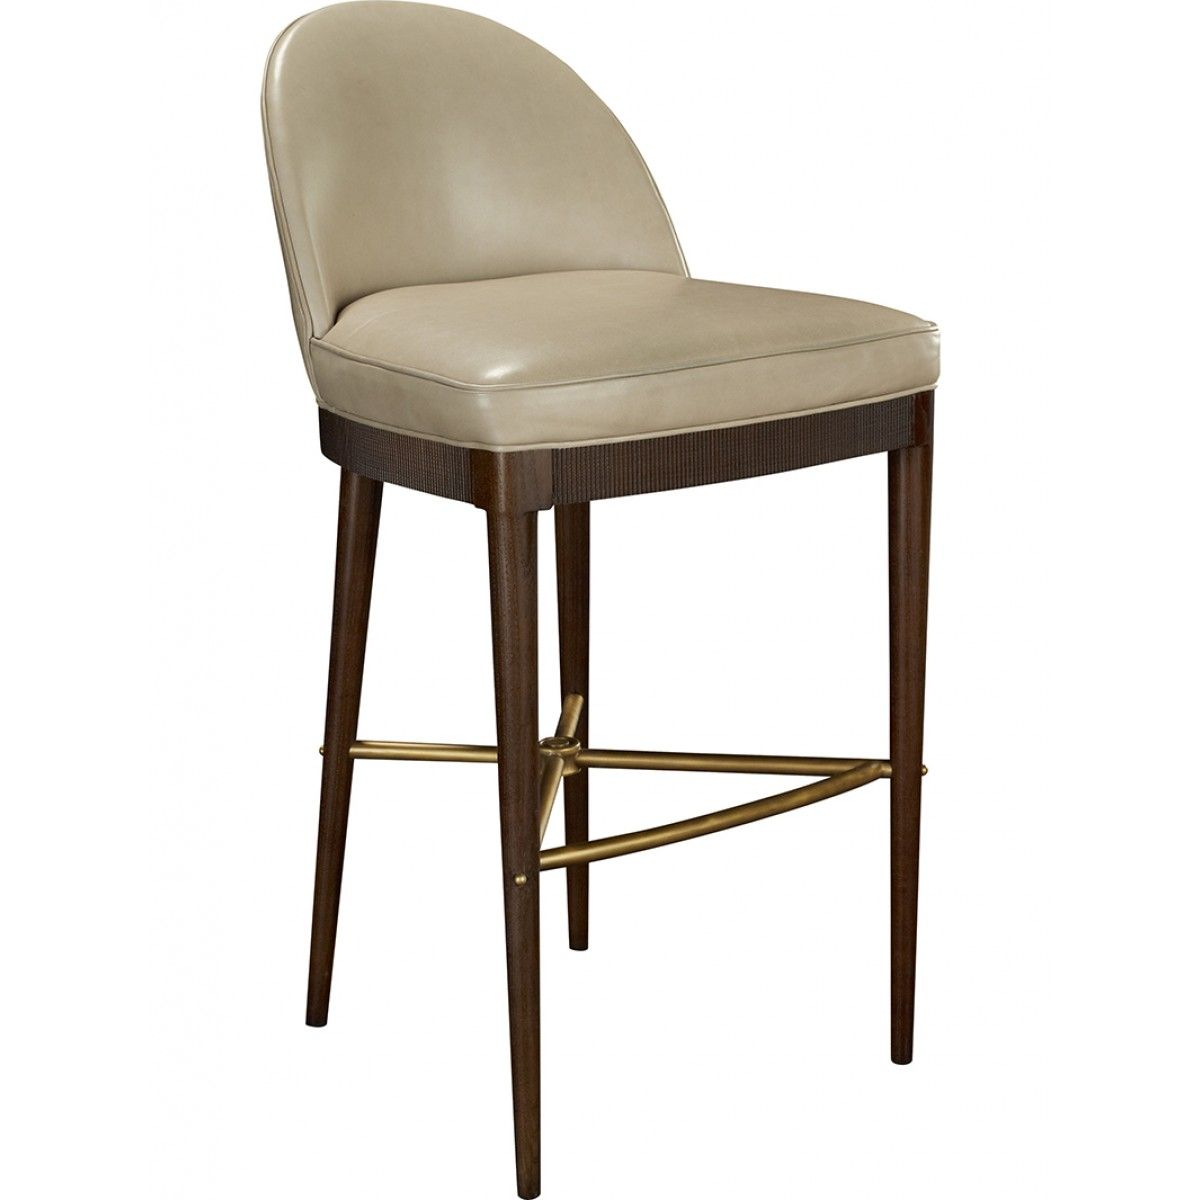 Hickory Chair Suzanne Kasler Laurent Bar Stool French